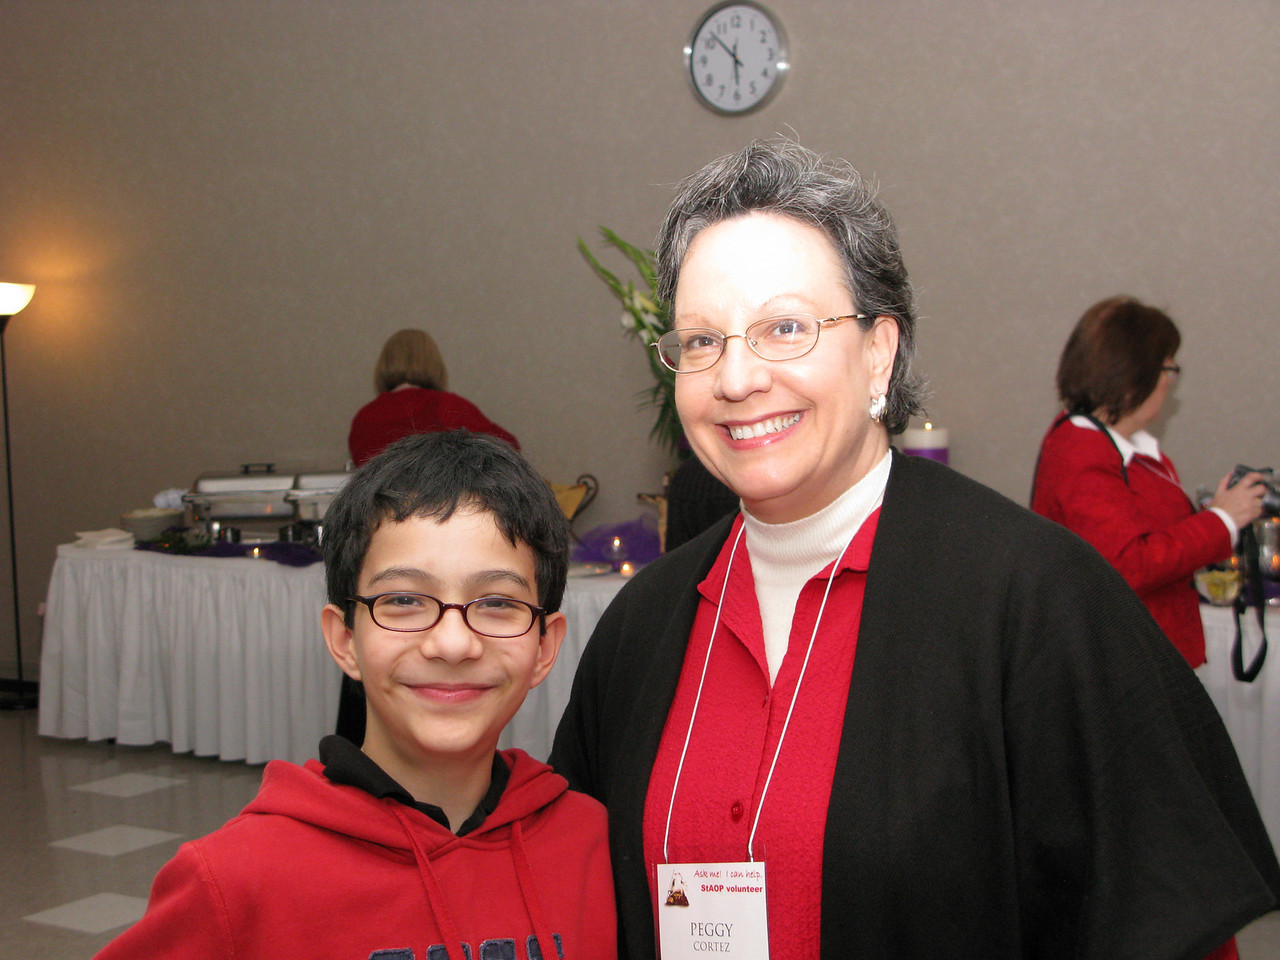 Peggy and the youngest volunteer, her son.